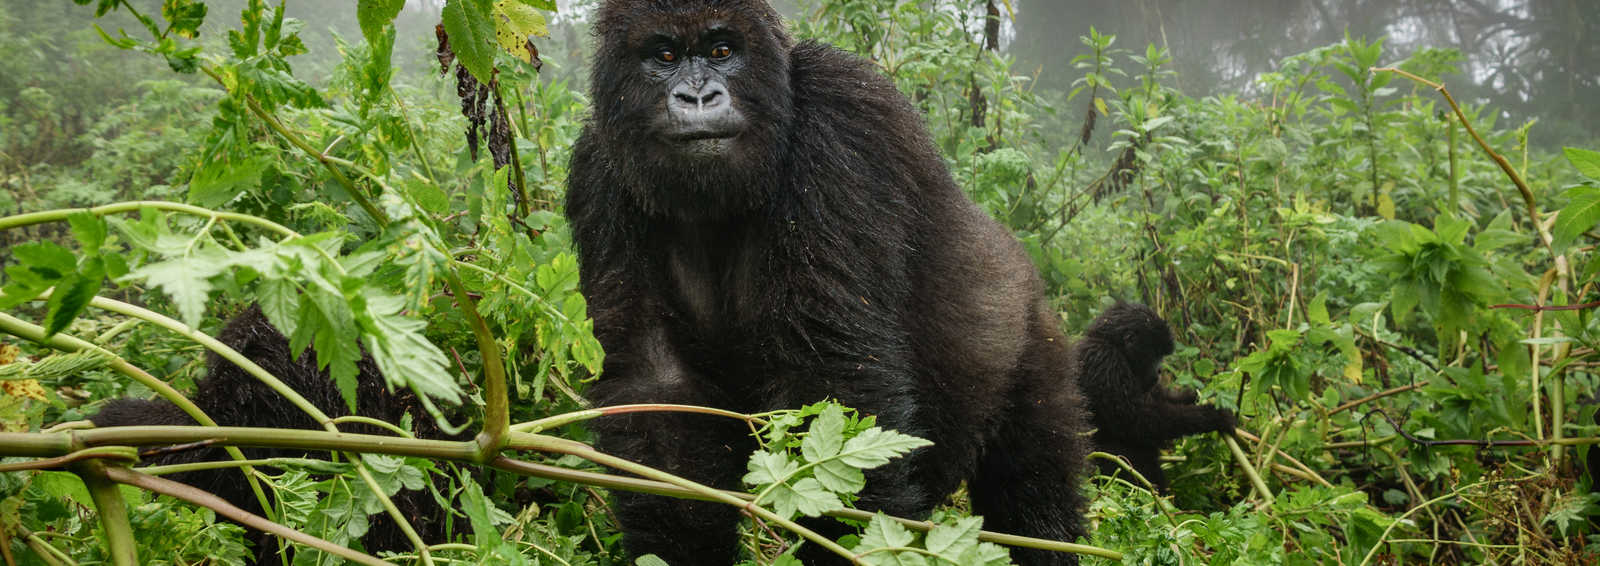 Short Breaks - See the gorillas